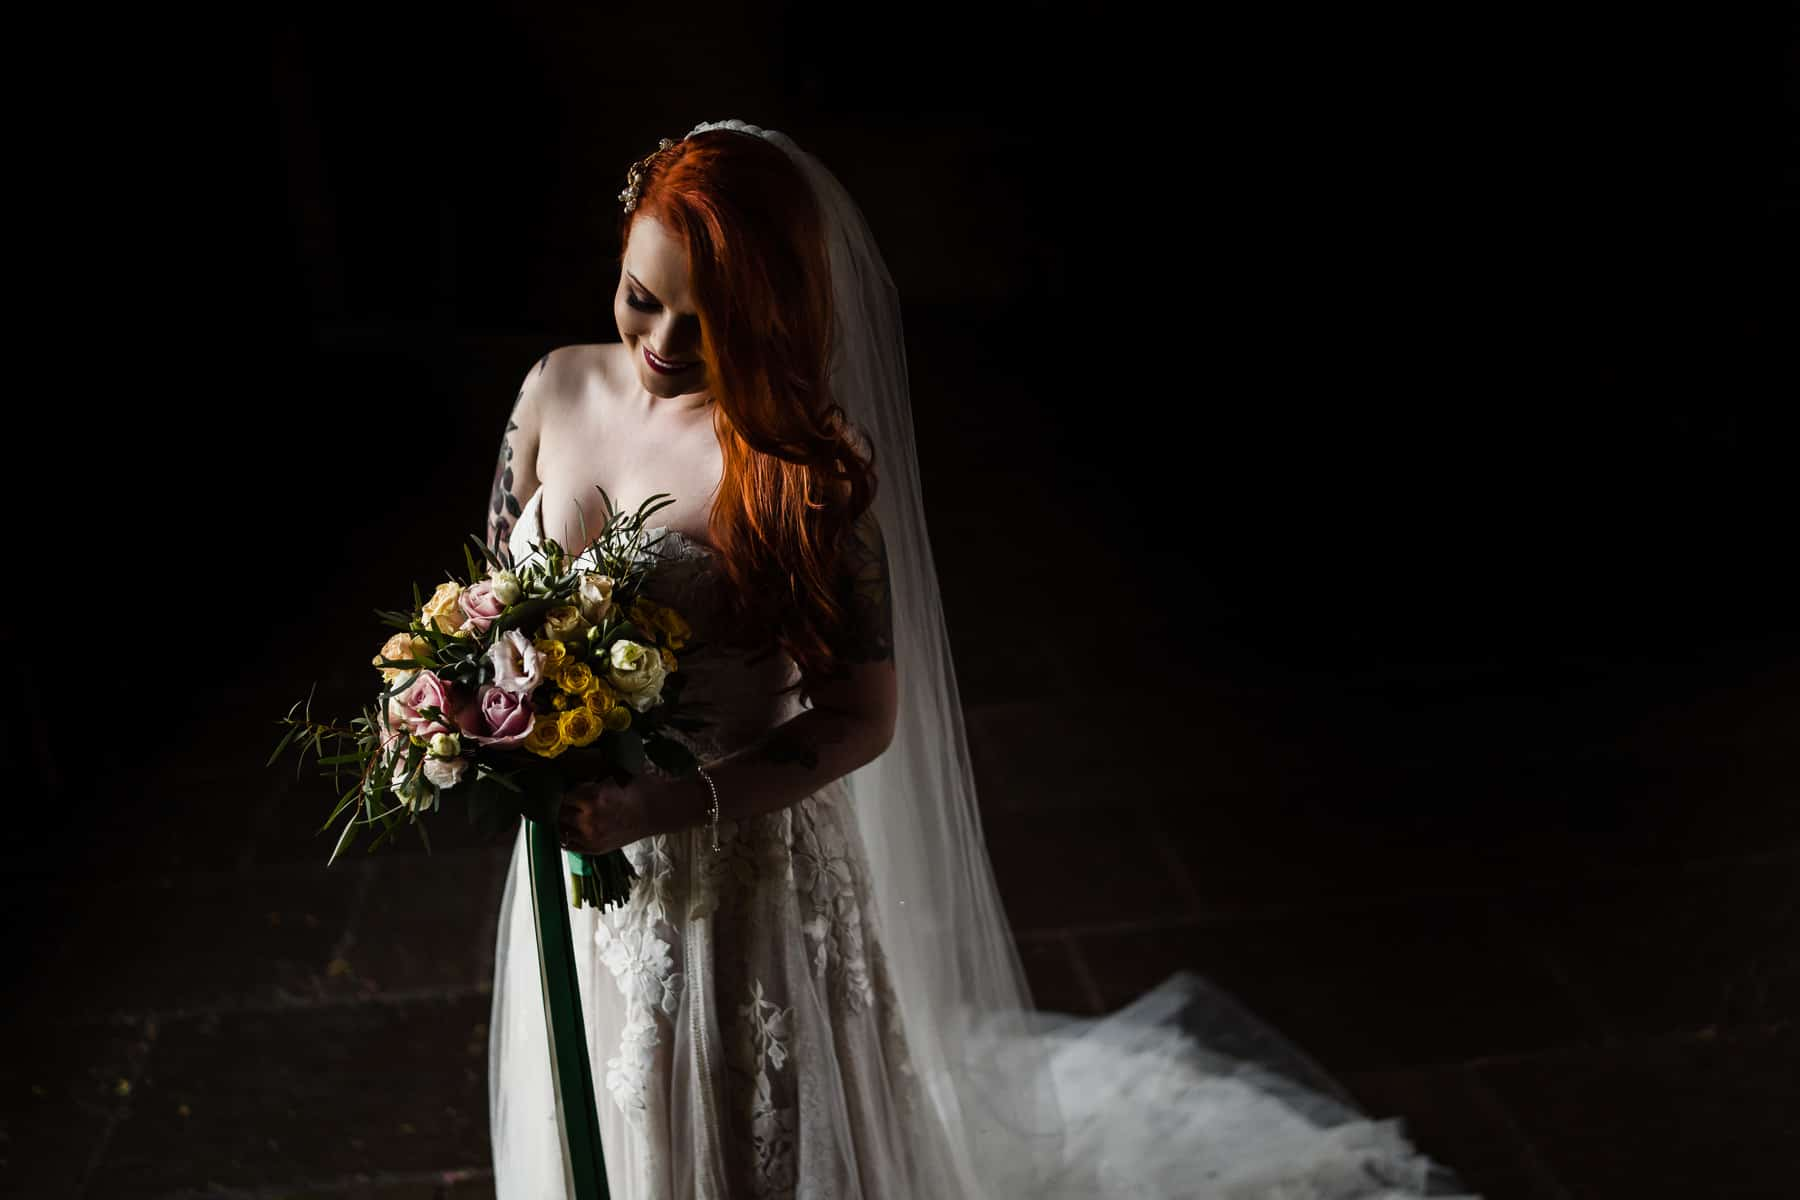 Beautiful bridal portrait of alternative bride with tattoos